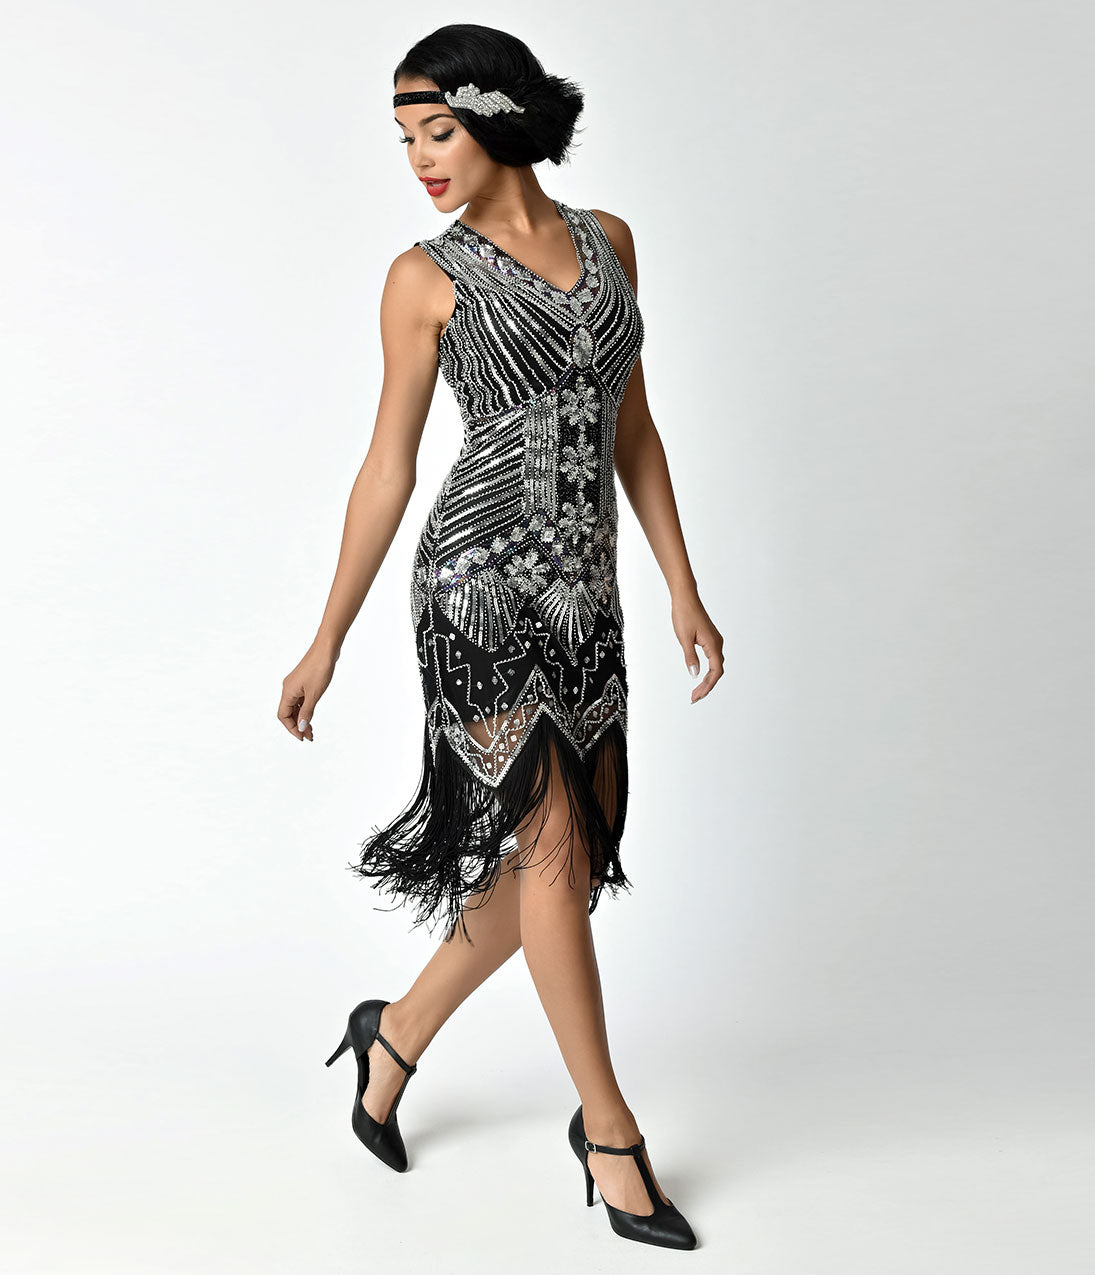 Swing Dance Shoes- Vintage, Lindy Hop, Tap, Ballroom 1920s Veronique Fringe Flapper Dress $98.00 AT vintagedancer.com